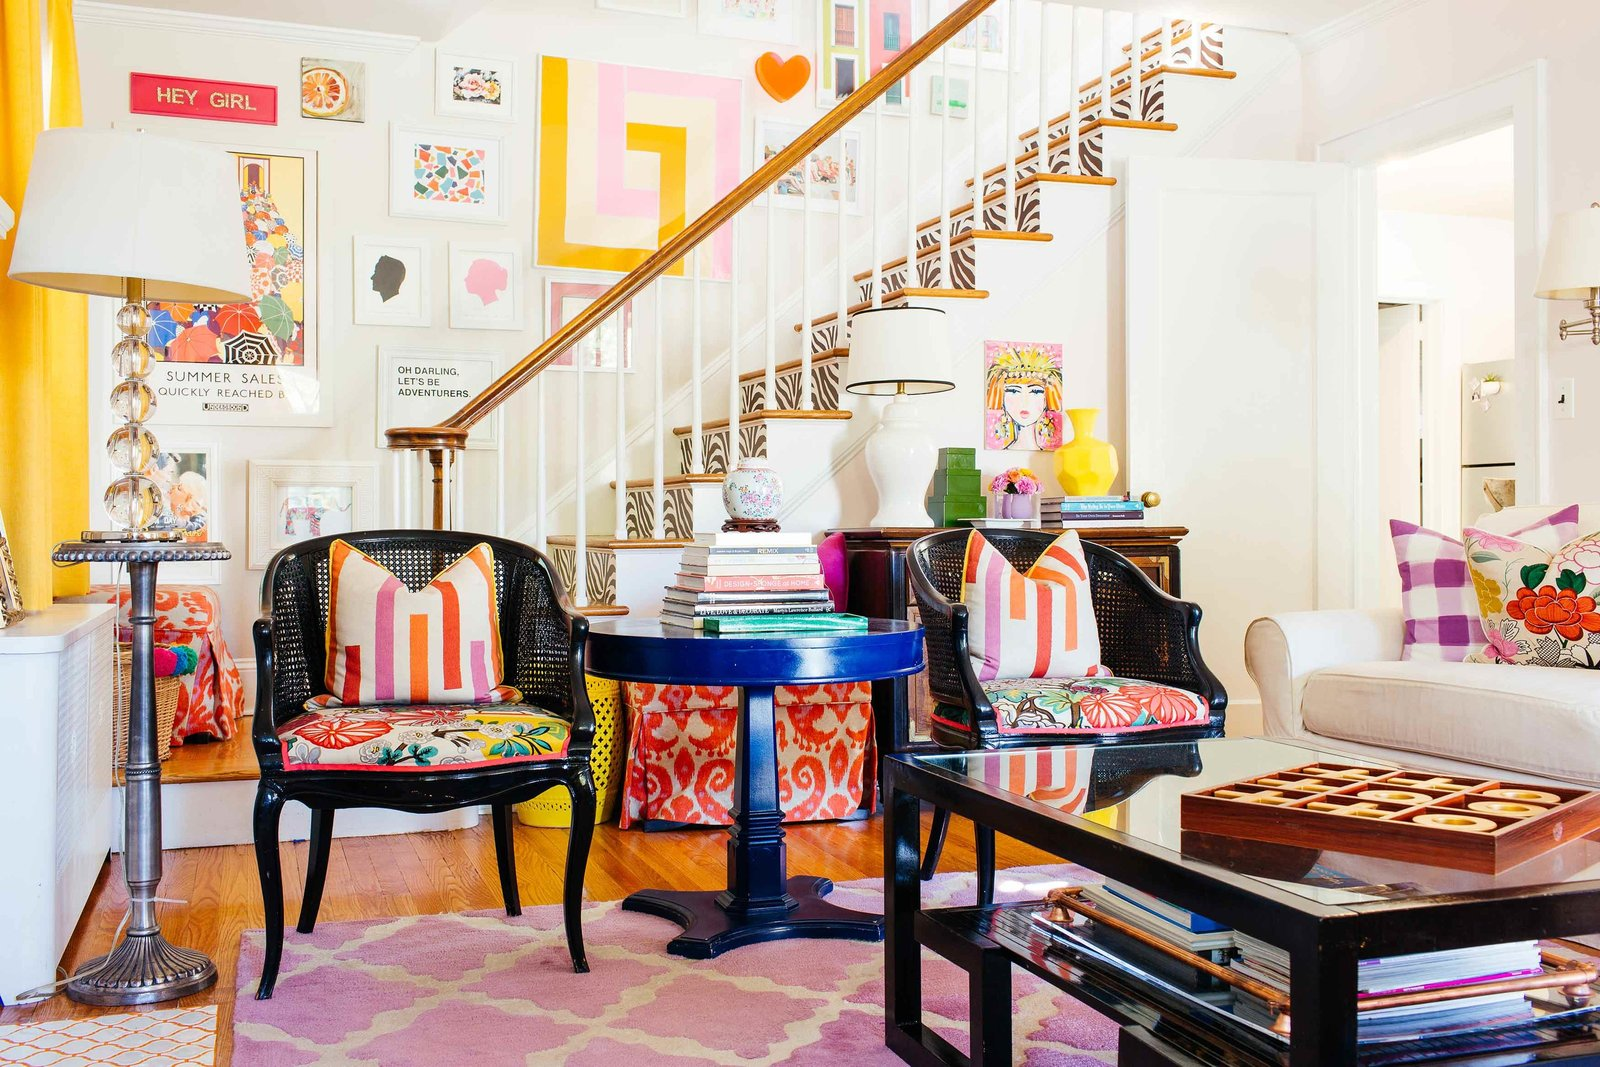 A colorfully decorated living room with a staircase backdrop.